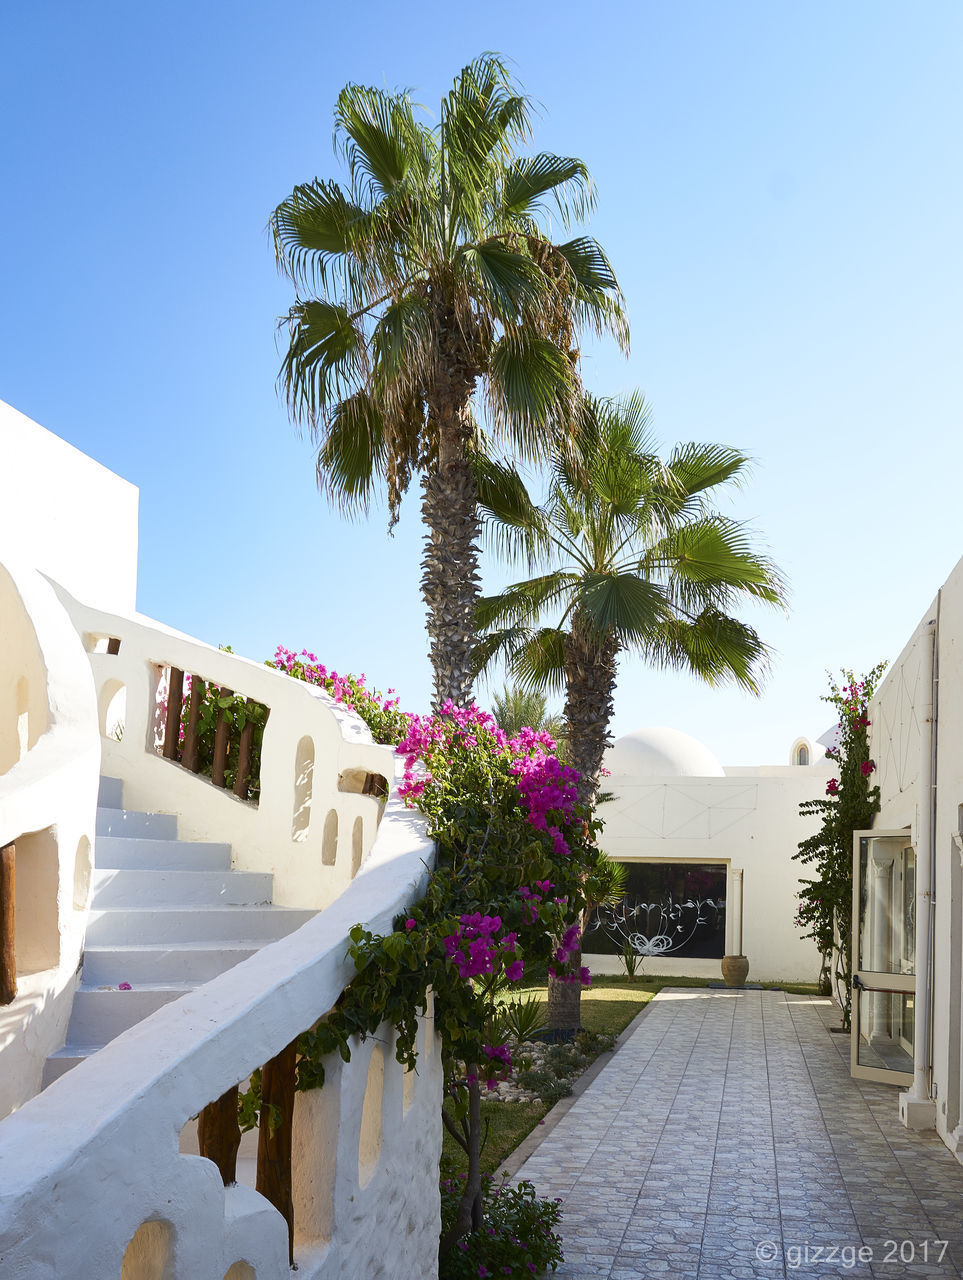 architecture, built structure, building exterior, no people, palm tree, tree, outdoors, clear sky, day, sky, whitewashed, nature, beauty in nature